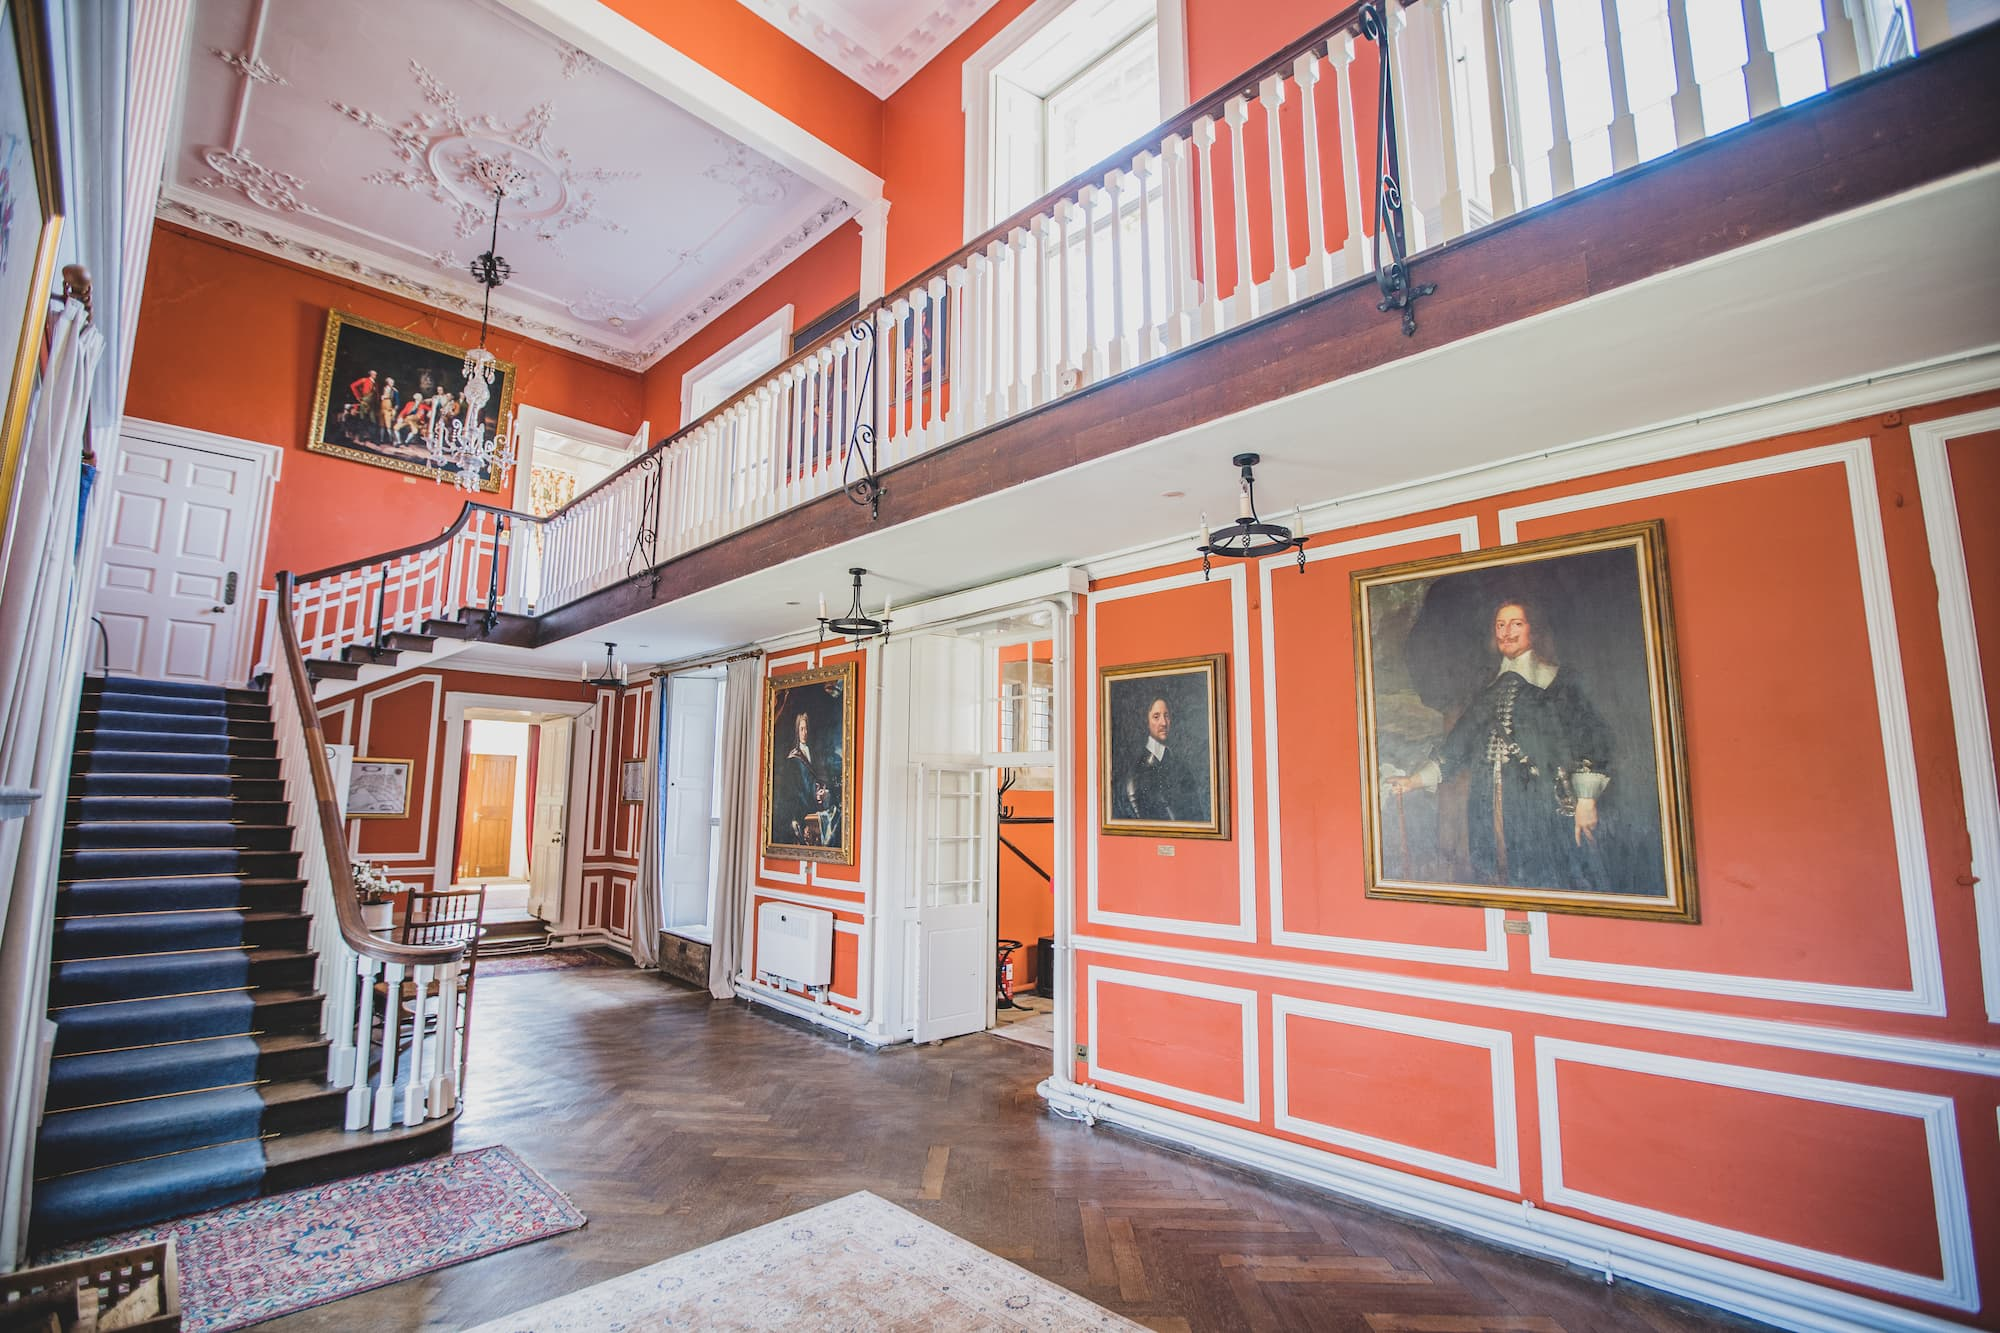 The foyer of the castle with a grand staircase, tall ceilings and painted portraits on the walls.